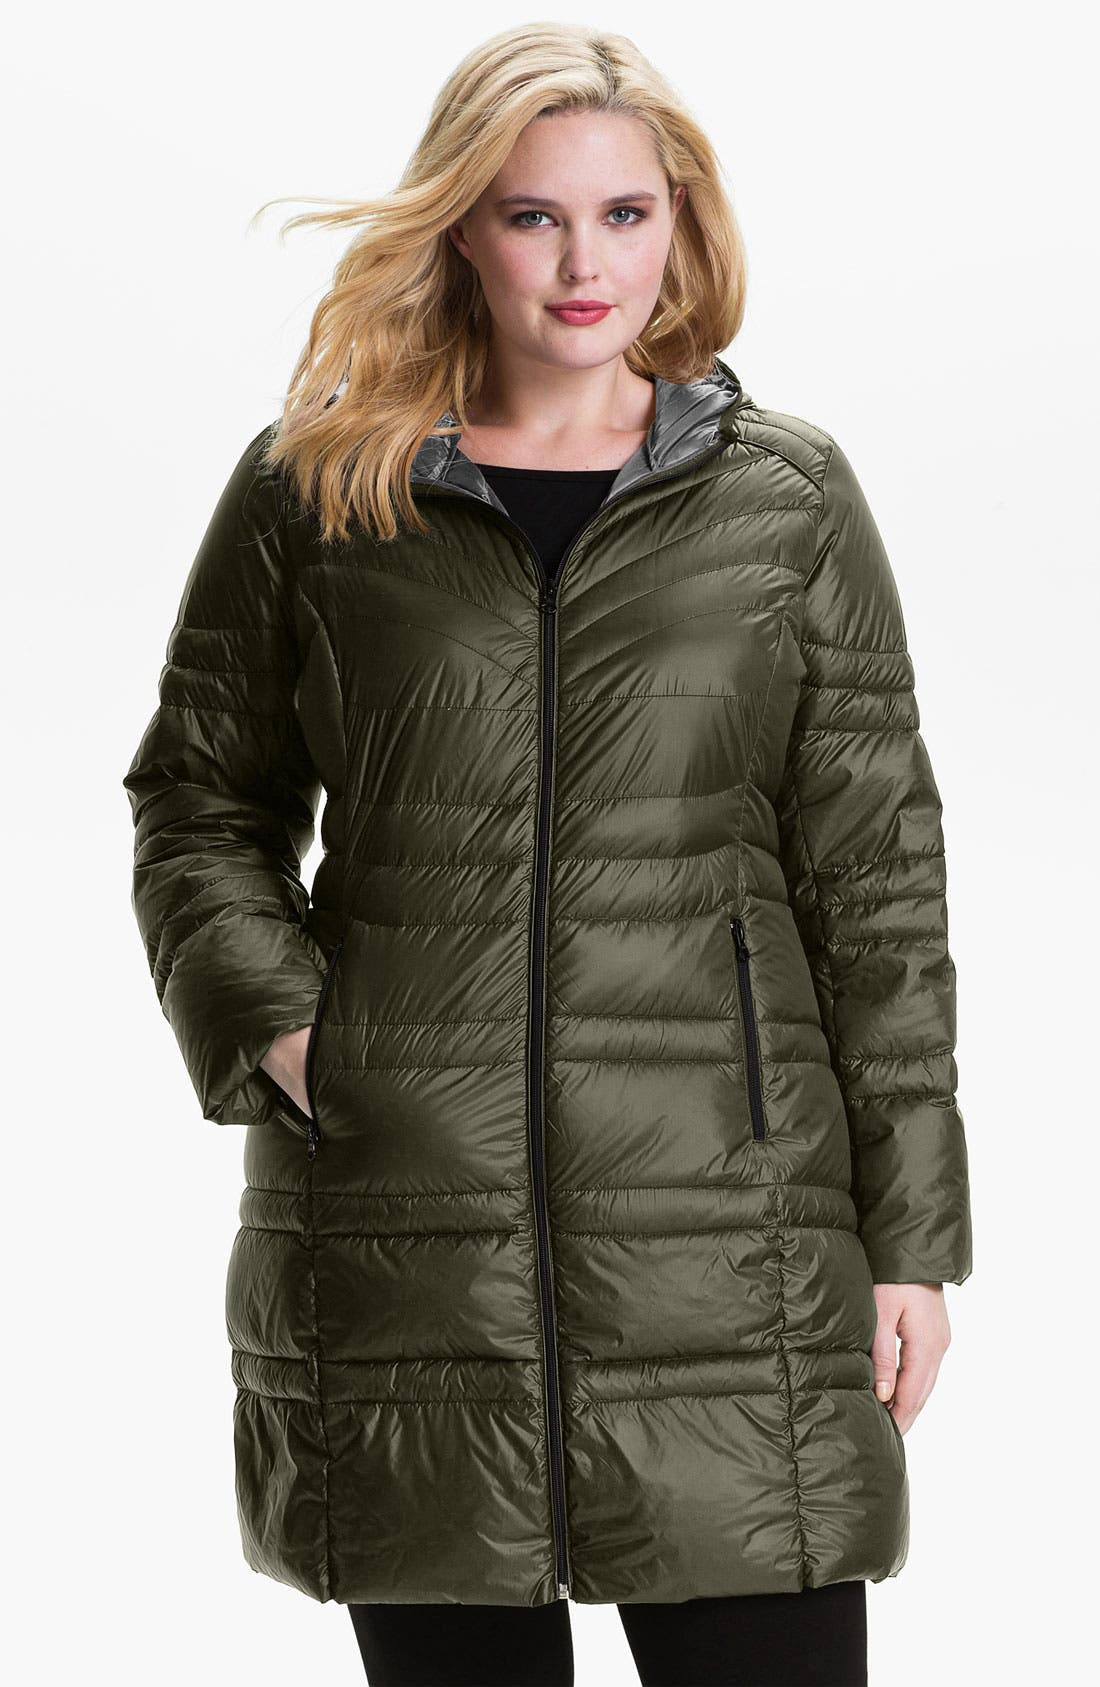 Alternate Image 1 Selected - Bernardo Hooded Down Walking Coat (Plus) (Online Exclusive)